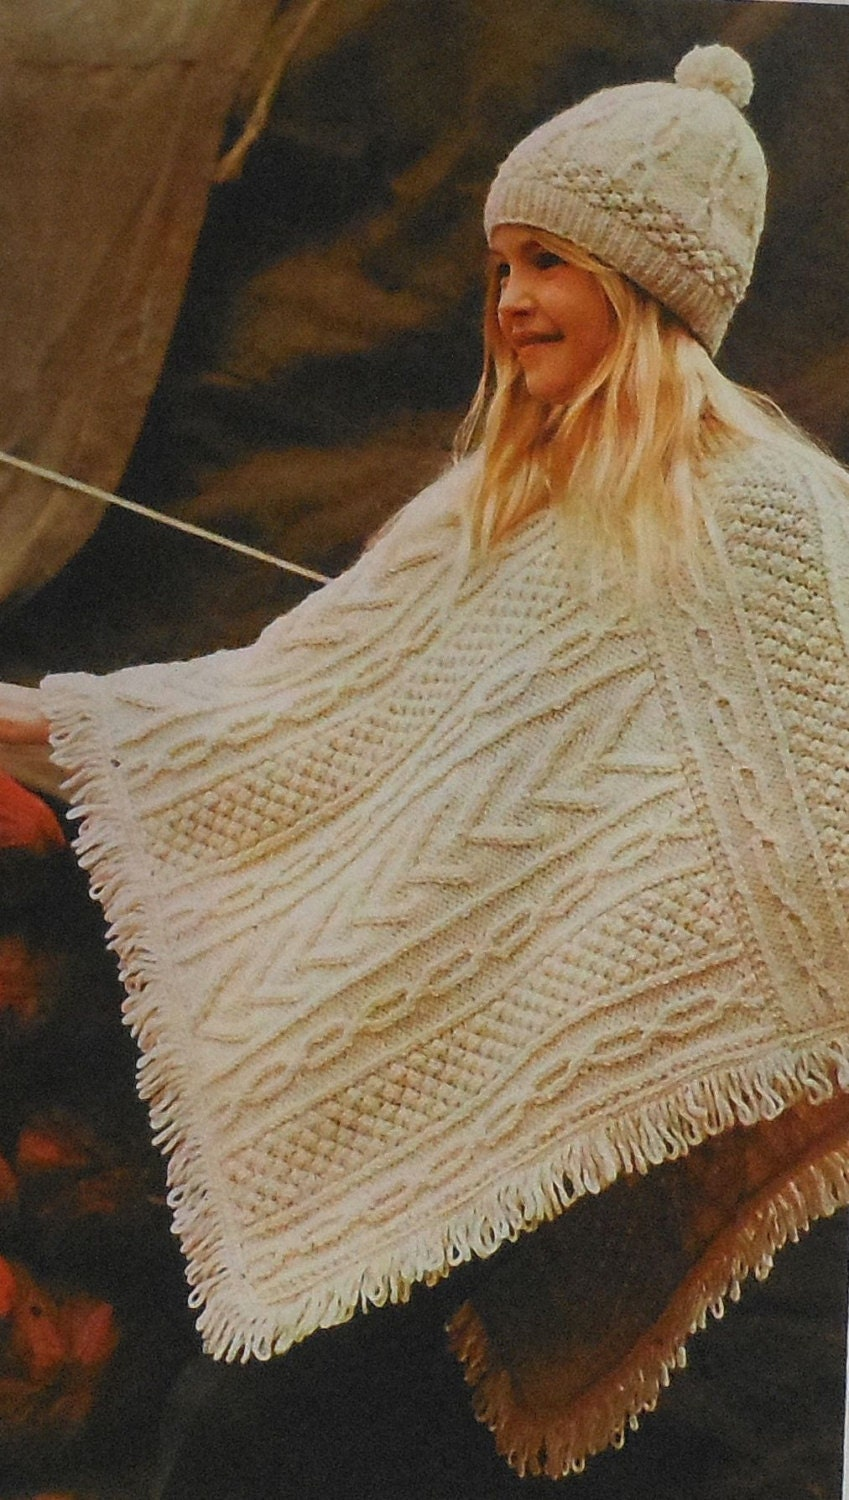 Child S Poncho Knitting Pattern : Vintage childs aran poncho and hat knitting by latenightcoffee